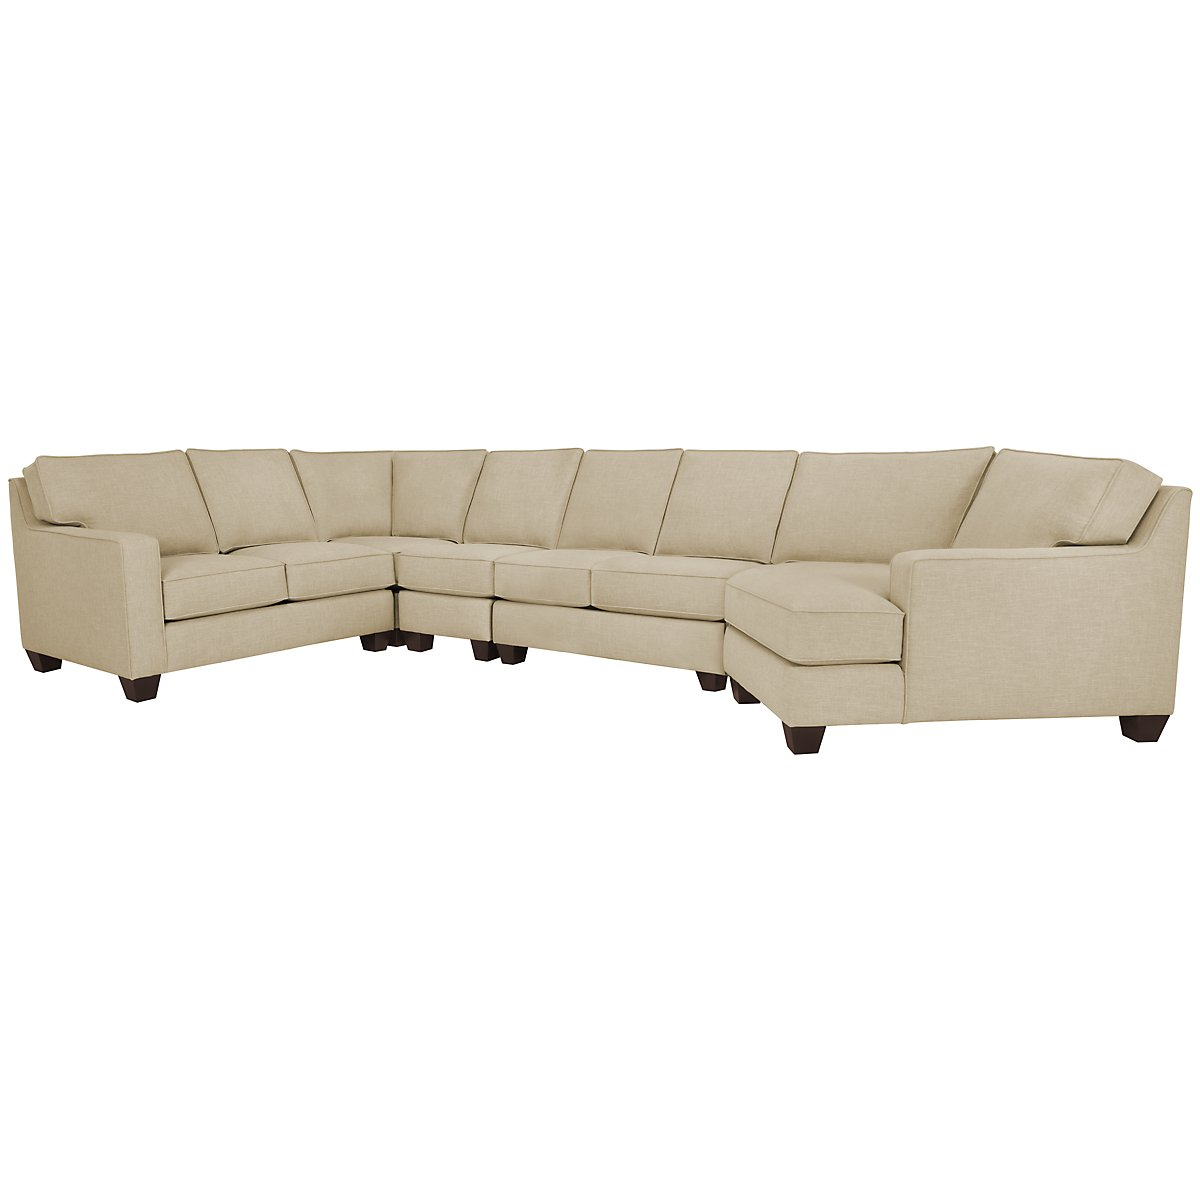 York Beige Fabric Large Right Cuddler Sectional